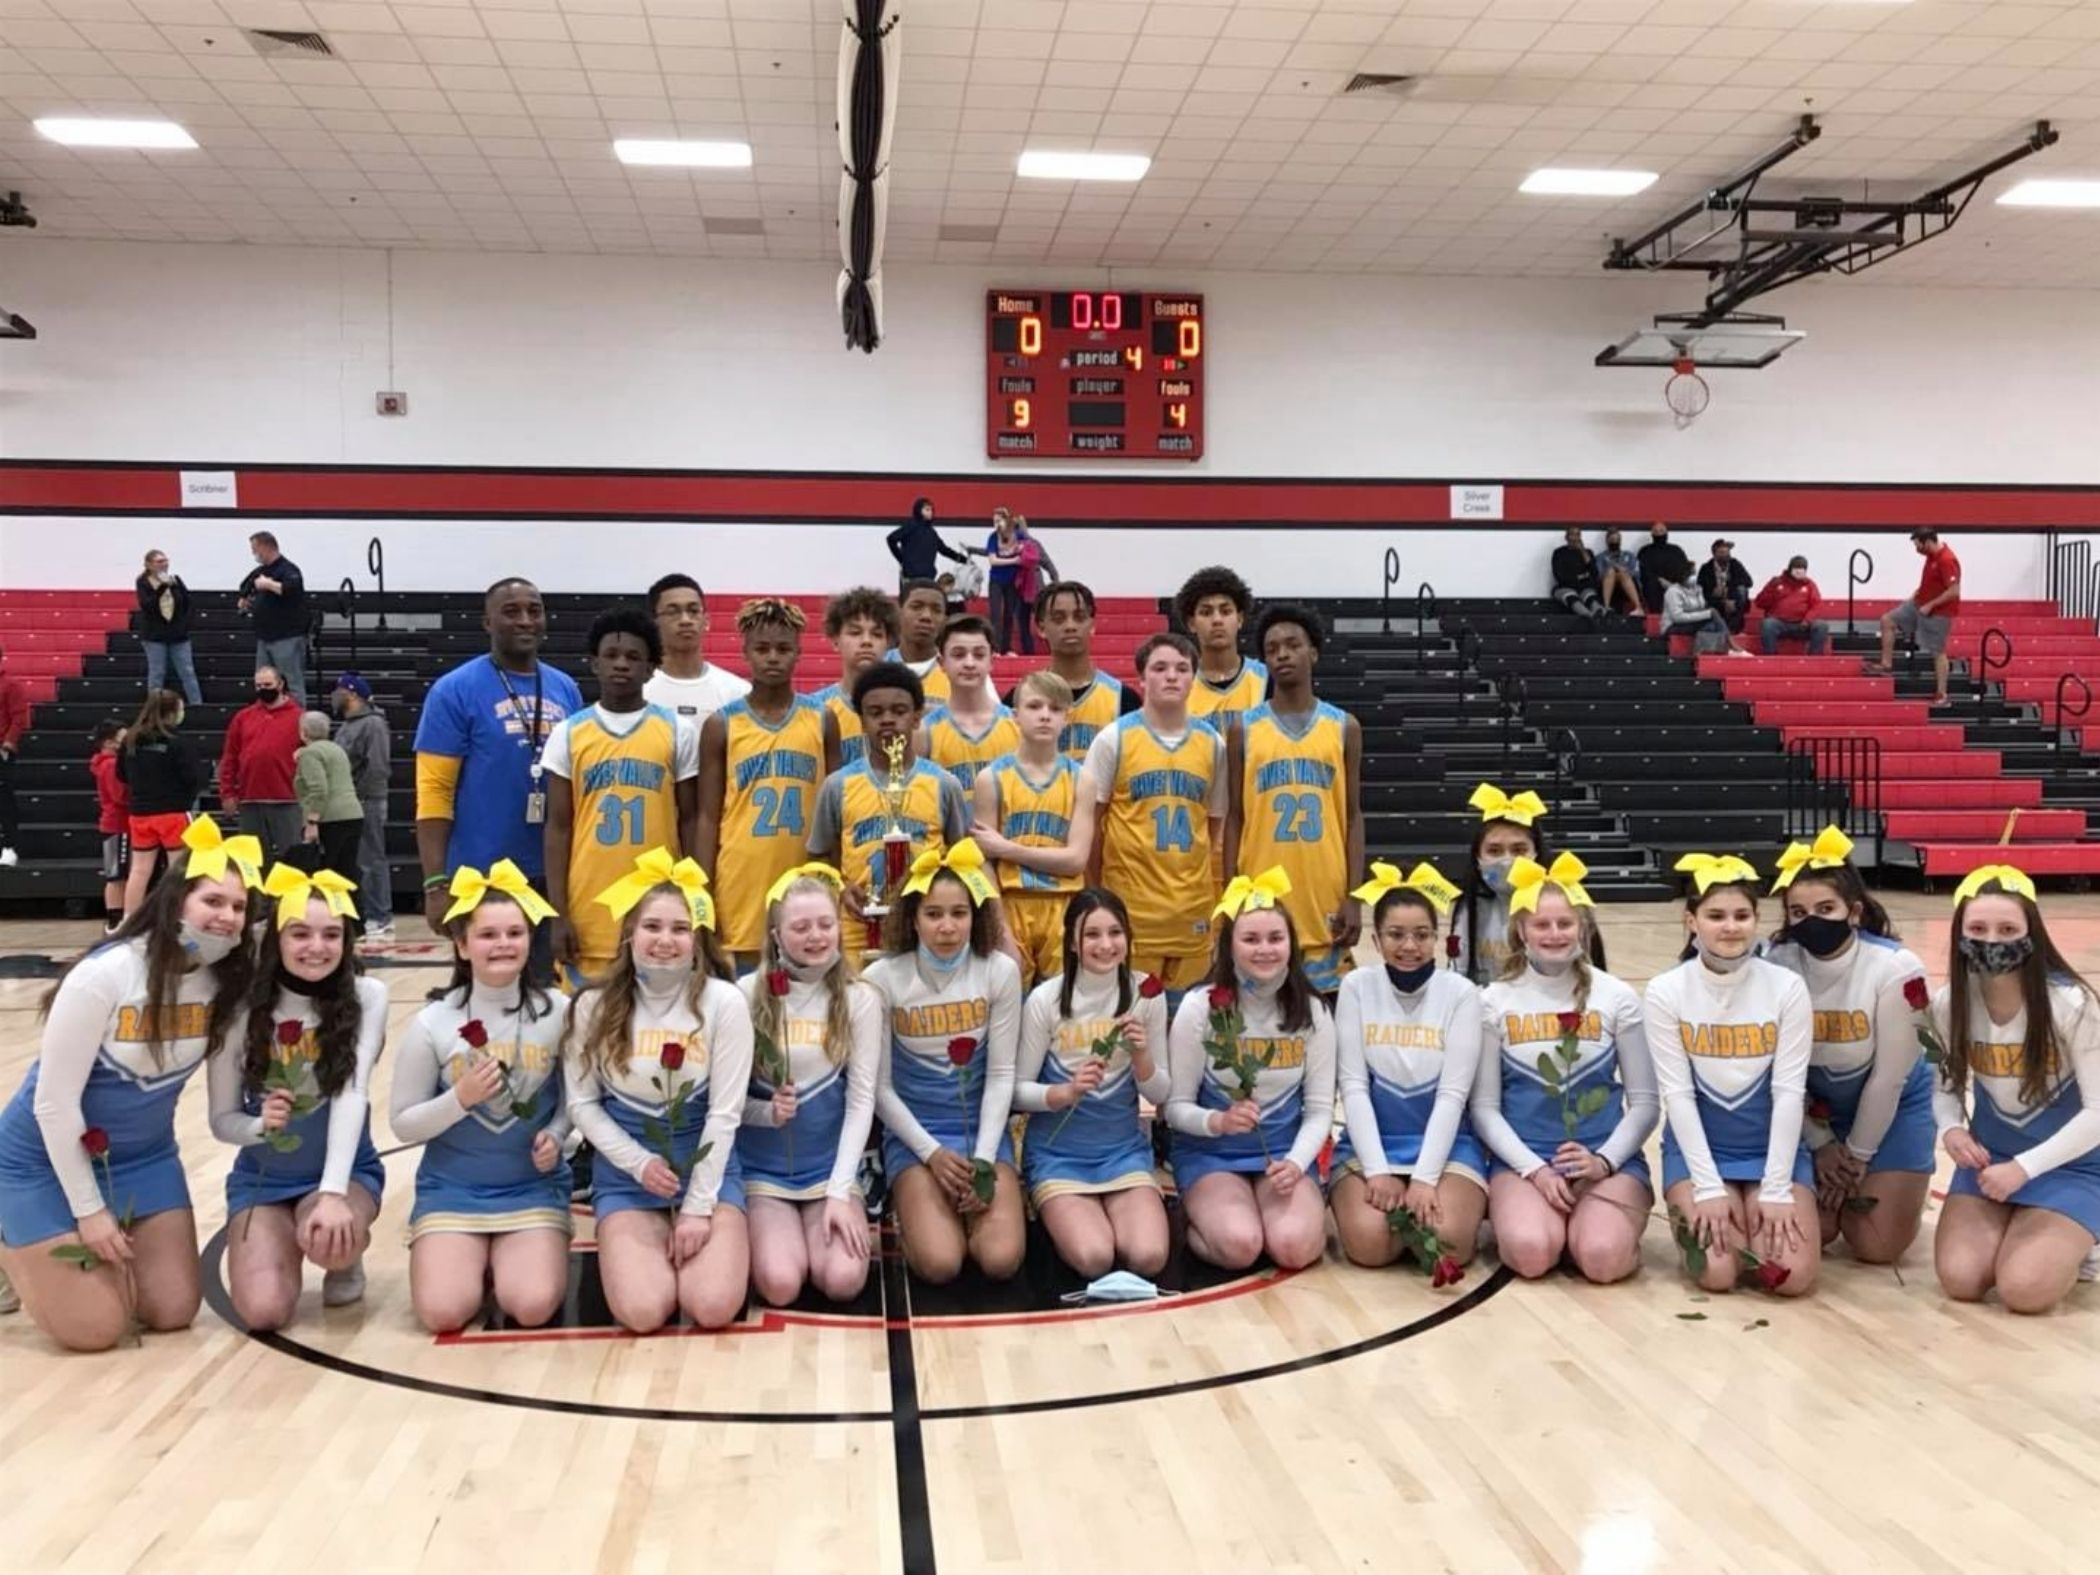 Basketball team and cheerleaders pose for photo